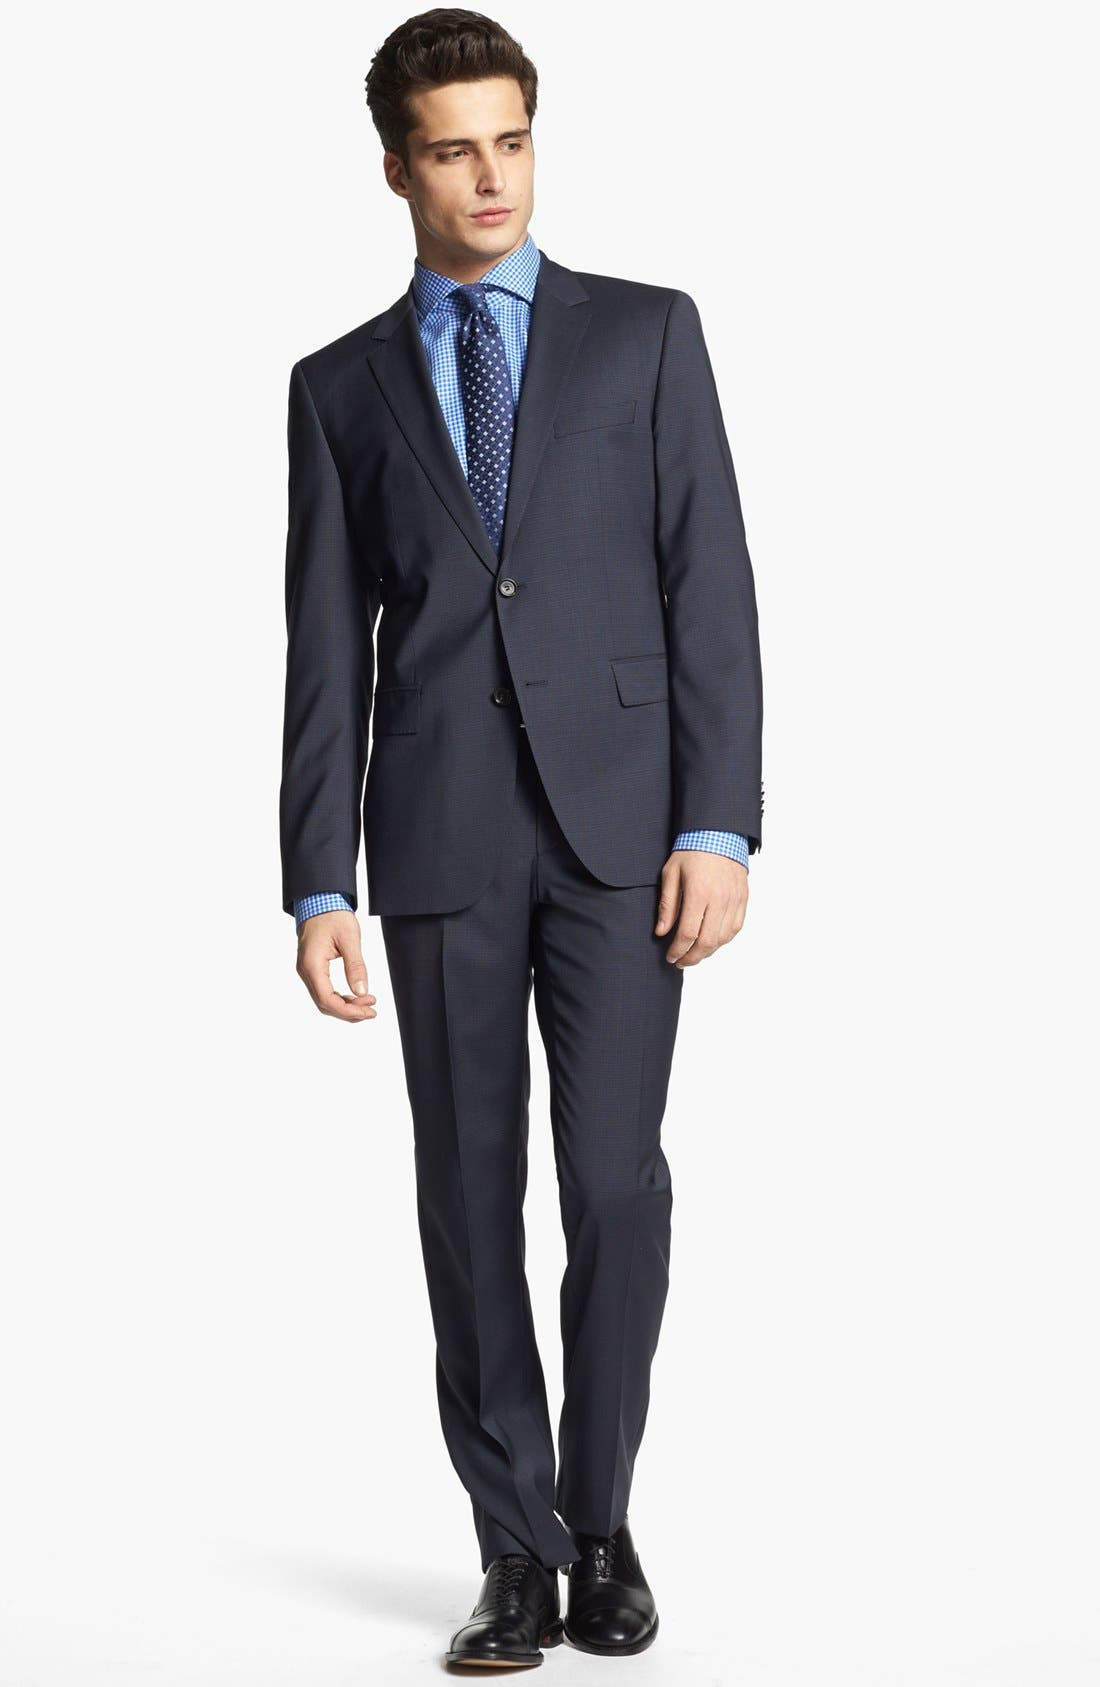 Main Image - BOSS HUGO BOSS 'James/Sharp' Trim Fit Check Suit